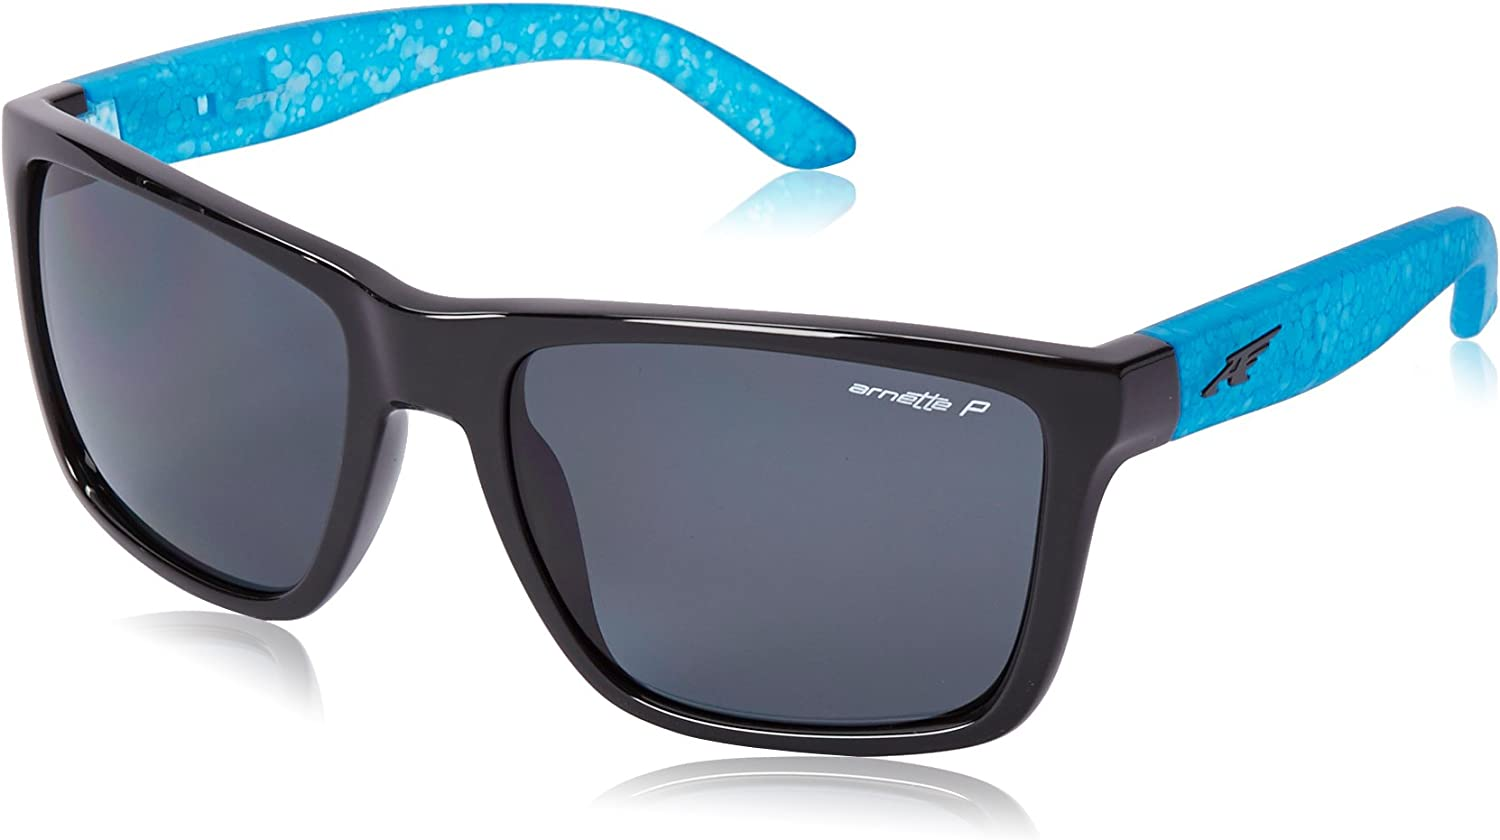 Arnette AN4177 Witch Doctor Square Sunglasses, Gloss Black w/ Grey Polarized, 59 mm